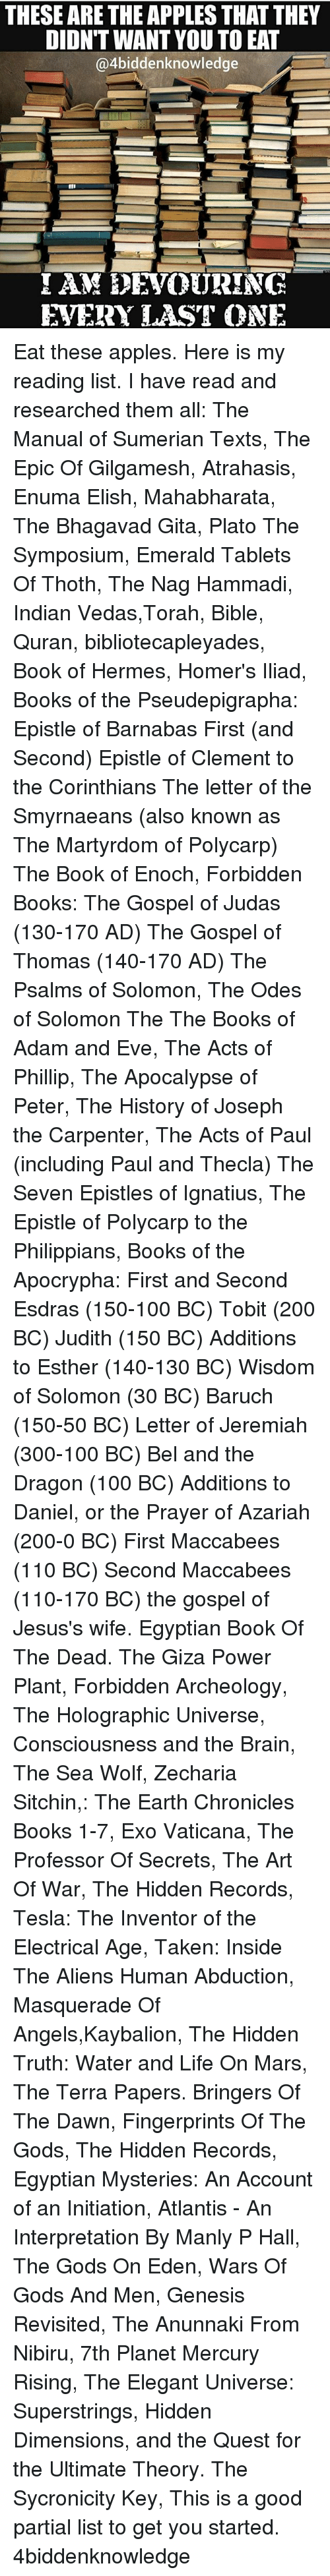 Adam and Eve, Anaconda, and Andrew Bogut: THESE ARE THE APPLES THAT THEY  DIDN'T WANT YOU TO EAT  @4biddenknowledge  EVERY LAST ONE Eat these apples. Here is my reading list. I have read and researched them all: The Manual of Sumerian Texts, The Epic Of Gilgamesh, Atrahasis, Enuma Elish, Mahabharata, The Bhagavad Gita, Plato The Symposium, Emerald Tablets Of Thoth, The Nag Hammadi, Indian Vedas,Torah, Bible, Quran, bibliotecapleyades, Book of Hermes, Homer's Iliad, Books of the Pseudepigrapha: Epistle of Barnabas First (and Second) Epistle of Clement to the Corinthians The letter of the Smyrnaeans (also known as The Martyrdom of Polycarp) The Book of Enoch, Forbidden Books: The Gospel of Judas (130-170 AD) The Gospel of Thomas (140-170 AD) The Psalms of Solomon, The Odes of Solomon The The Books of Adam and Eve, The Acts of Phillip, The Apocalypse of Peter, The History of Joseph the Carpenter, The Acts of Paul (including Paul and Thecla) The Seven Epistles of Ignatius, The Epistle of Polycarp to the Philippians, Books of the Apocrypha: First and Second Esdras (150-100 BC) Tobit (200 BC) Judith (150 BC) Additions to Esther (140-130 BC) Wisdom of Solomon (30 BC) Baruch (150-50 BC) Letter of Jeremiah (300-100 BC) Bel and the Dragon (100 BC) Additions to Daniel, or the Prayer of Azariah (200-0 BC) First Maccabees (110 BC) Second Maccabees (110-170 BC) the gospel of Jesus's wife. Egyptian Book Of The Dead. The Giza Power Plant, Forbidden Archeology, The Holographic Universe, Consciousness and the Brain, The Sea Wolf, Zecharia Sitchin,: The Earth Chronicles Books 1-7, Exo Vaticana, The Professor Of Secrets, The Art Of War, The Hidden Records, Tesla: The Inventor of the Electrical Age, Taken: Inside The Aliens Human Abduction, Masquerade Of Angels,Kaybalion, The Hidden Truth: Water and Life On Mars, The Terra Papers. Bringers Of The Dawn, Fingerprints Of The Gods, The Hidden Records, Egyptian Mysteries: An Account of an Initiation, Atlantis - An Interpretation By Manly P Hall, The Gods On Eden, Wars Of Gods And Men, Genesis Revisited, The Anunnaki From Nibiru, 7th Planet Mercury Rising, The Elegant Universe: Superstrings, Hidden Dimensions, and the Quest for the Ultimate Theory. The Sycronicity Key, This is a good partial list to get you started. 4biddenknowledge